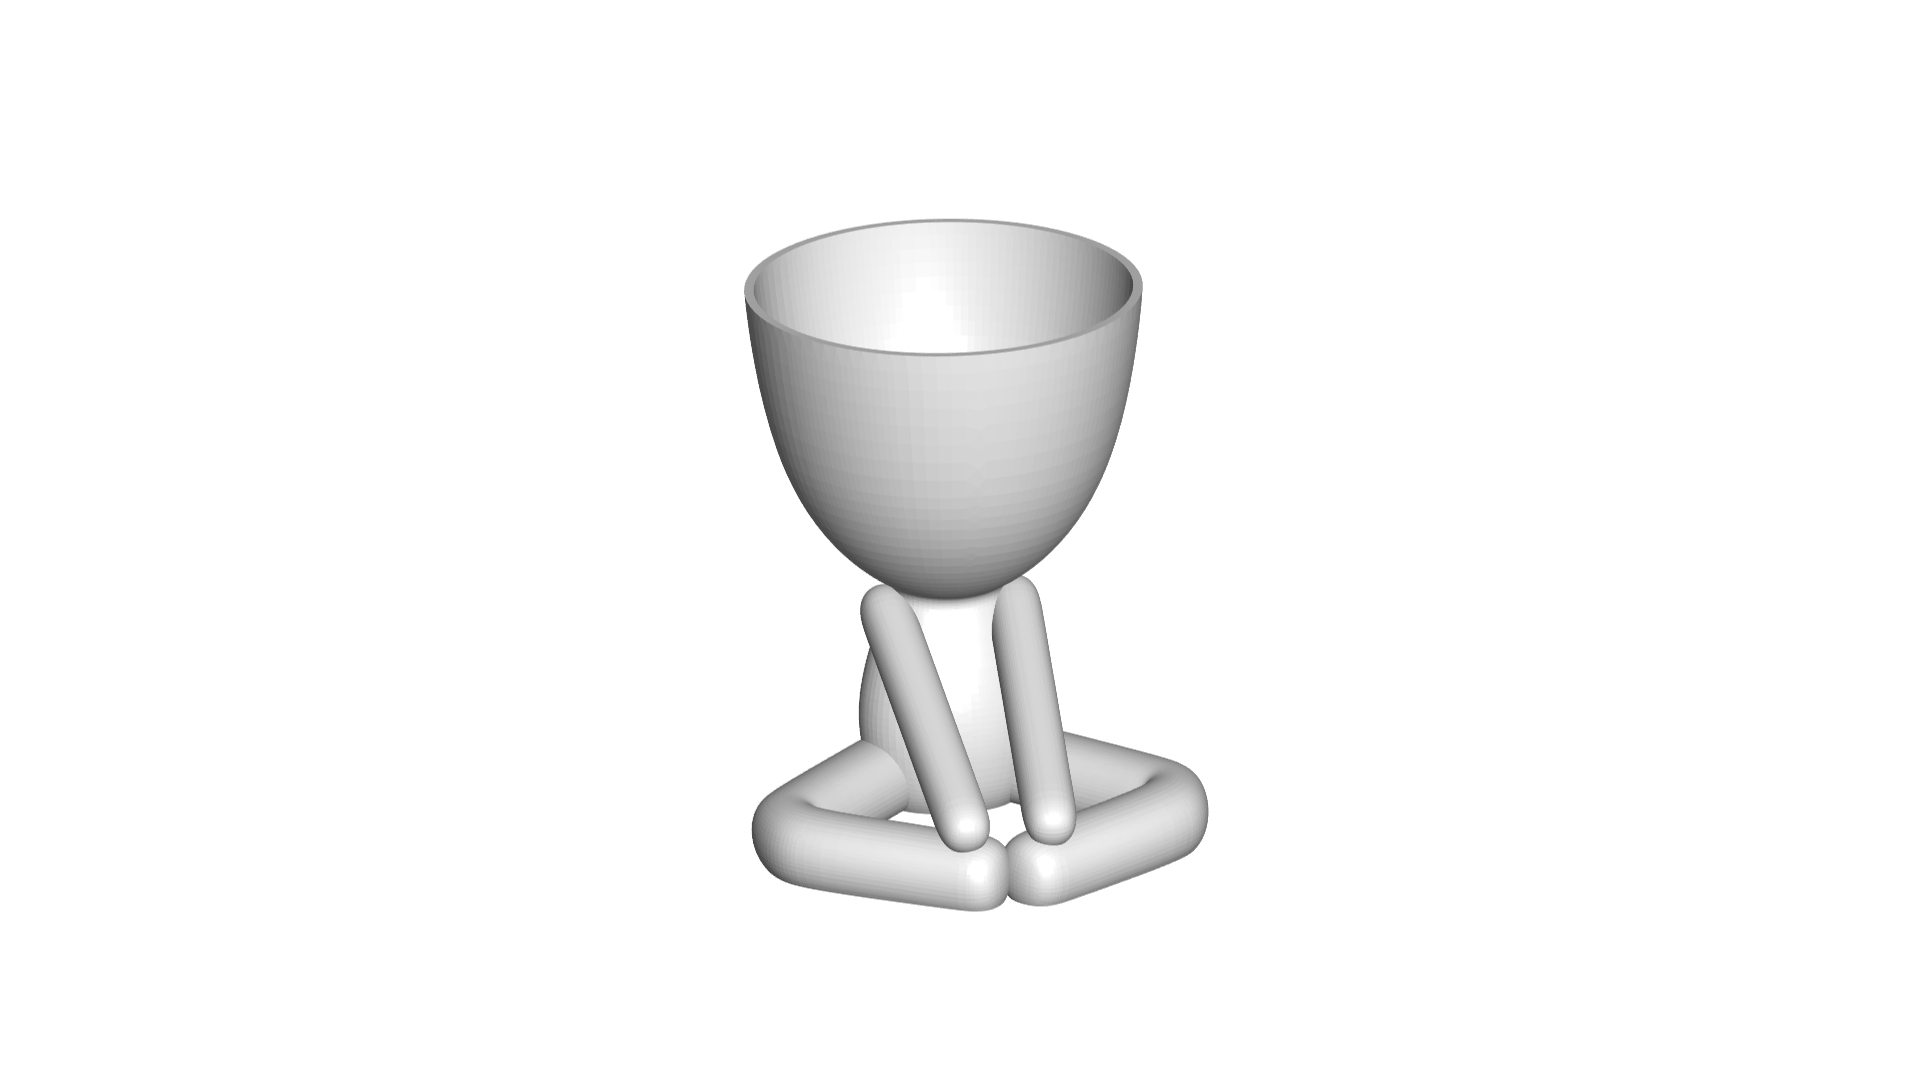 Vaso_12_Blanco_1.jpg Download free STL file YOGA ESTIRANDO JARRÓN MACETA ROBERT 12 -  YOGA STRETCHING VASE FLOWERPOT ROBERT 12 • Template to 3D print, PRODUSTL56